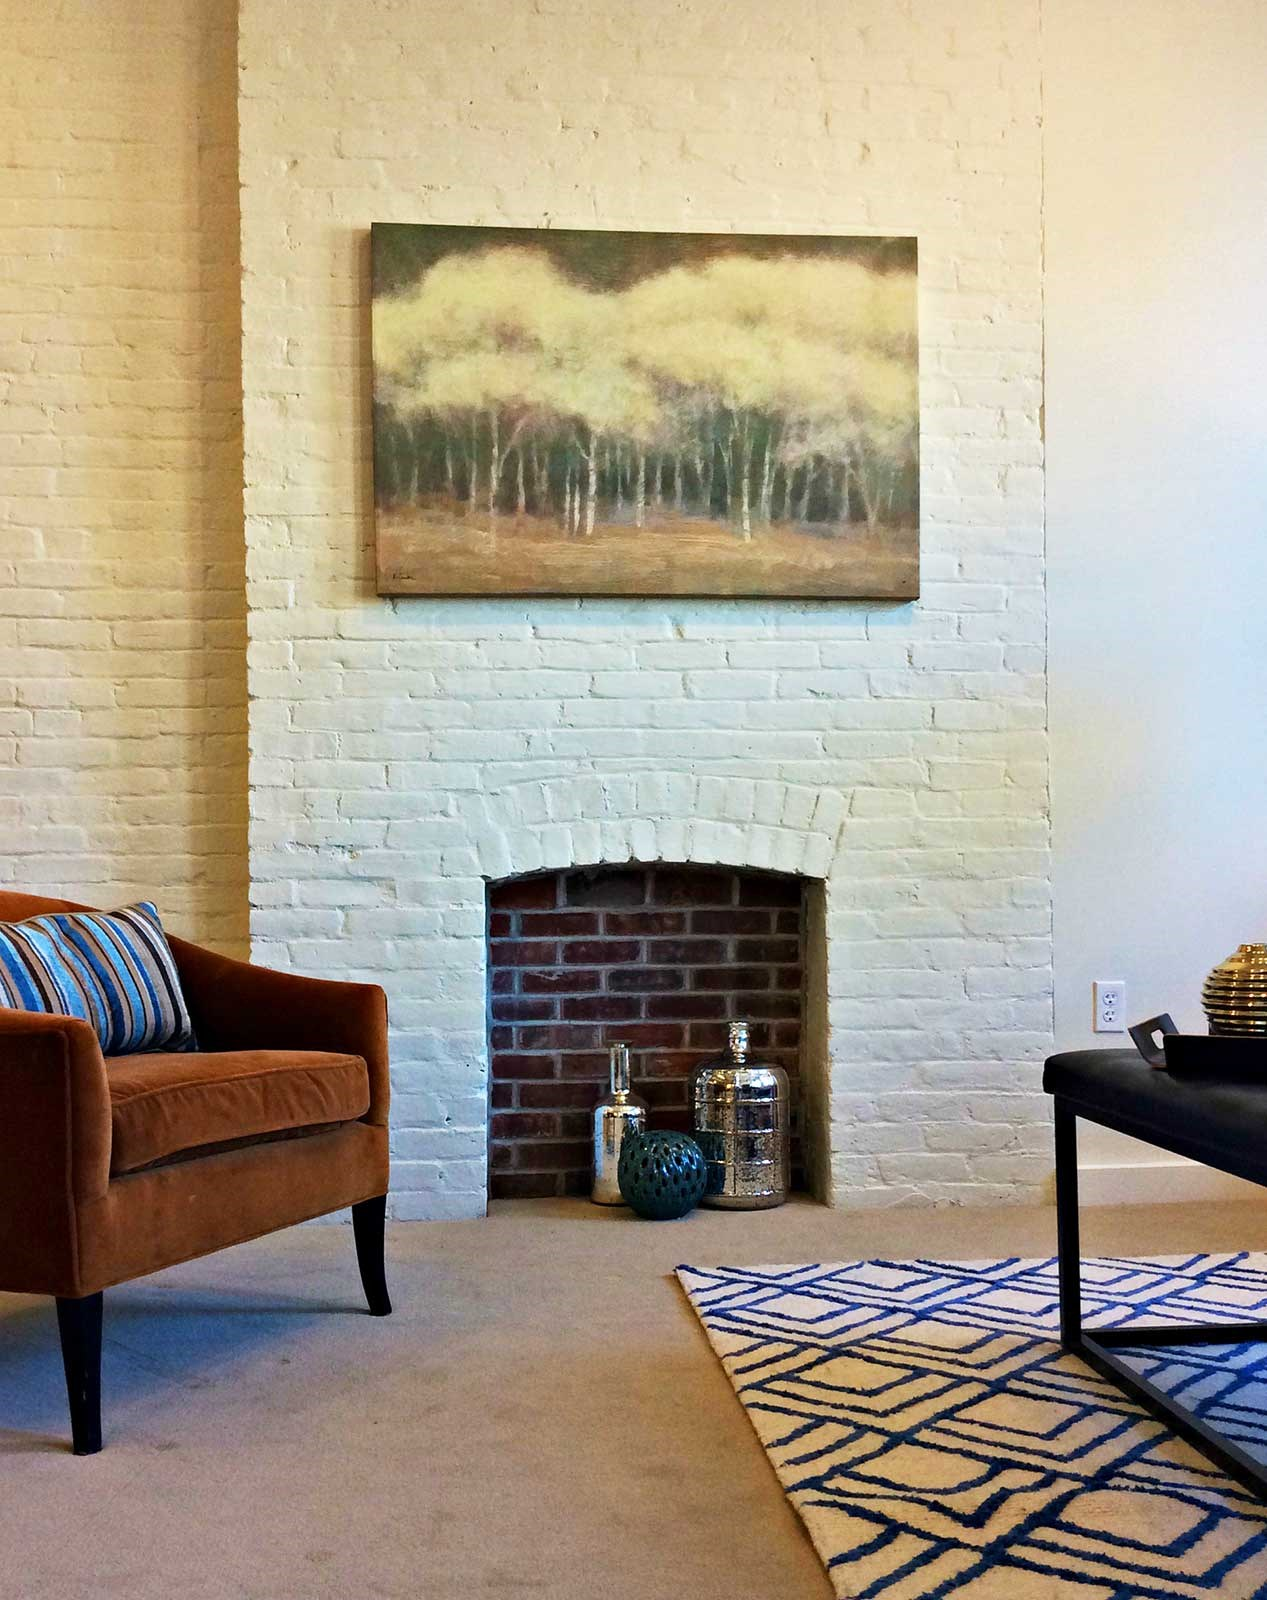 Brick interior with inset detail to mimic a fireplace.